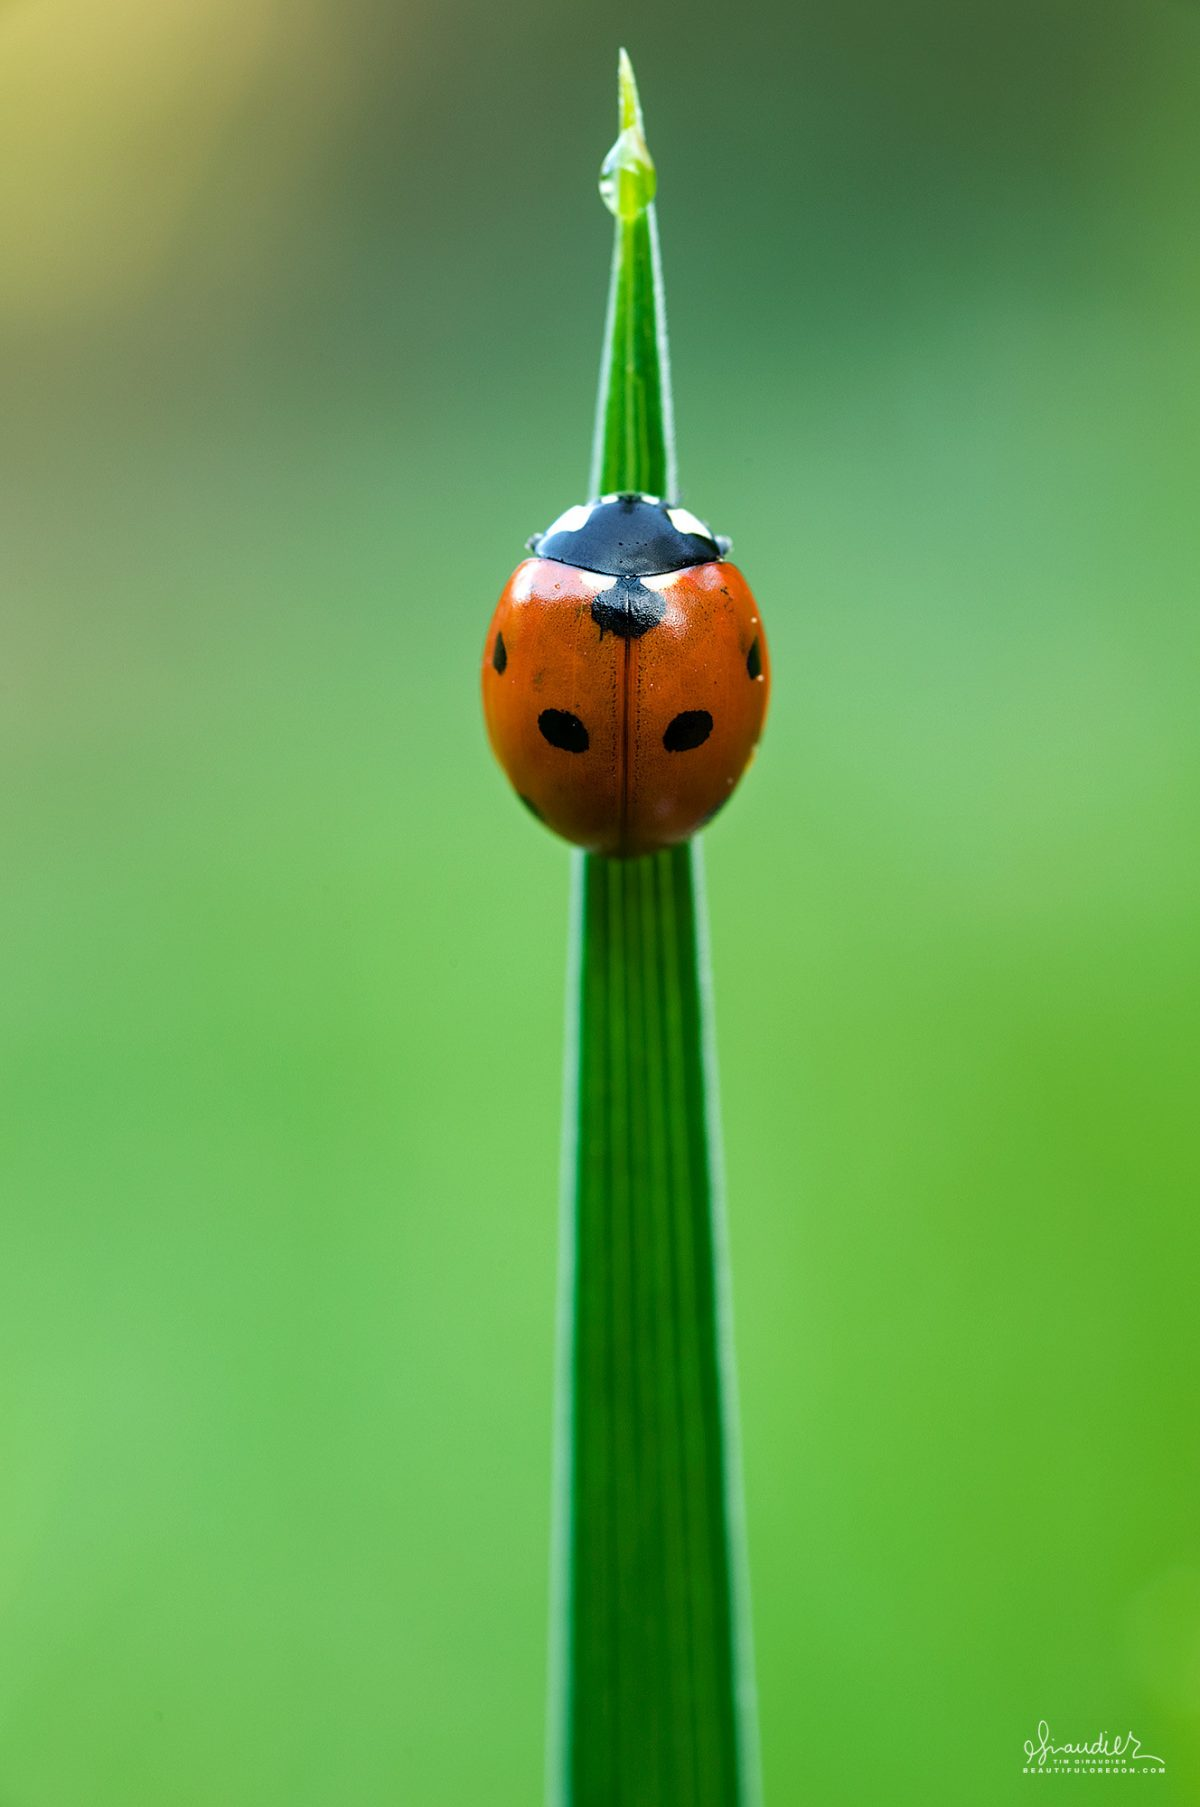 A Seven-spotted Ladybug (Coccinella septempunctata) awakes from evening chill atop a blade of grass. Hendricks Park, South Willamette Valley.